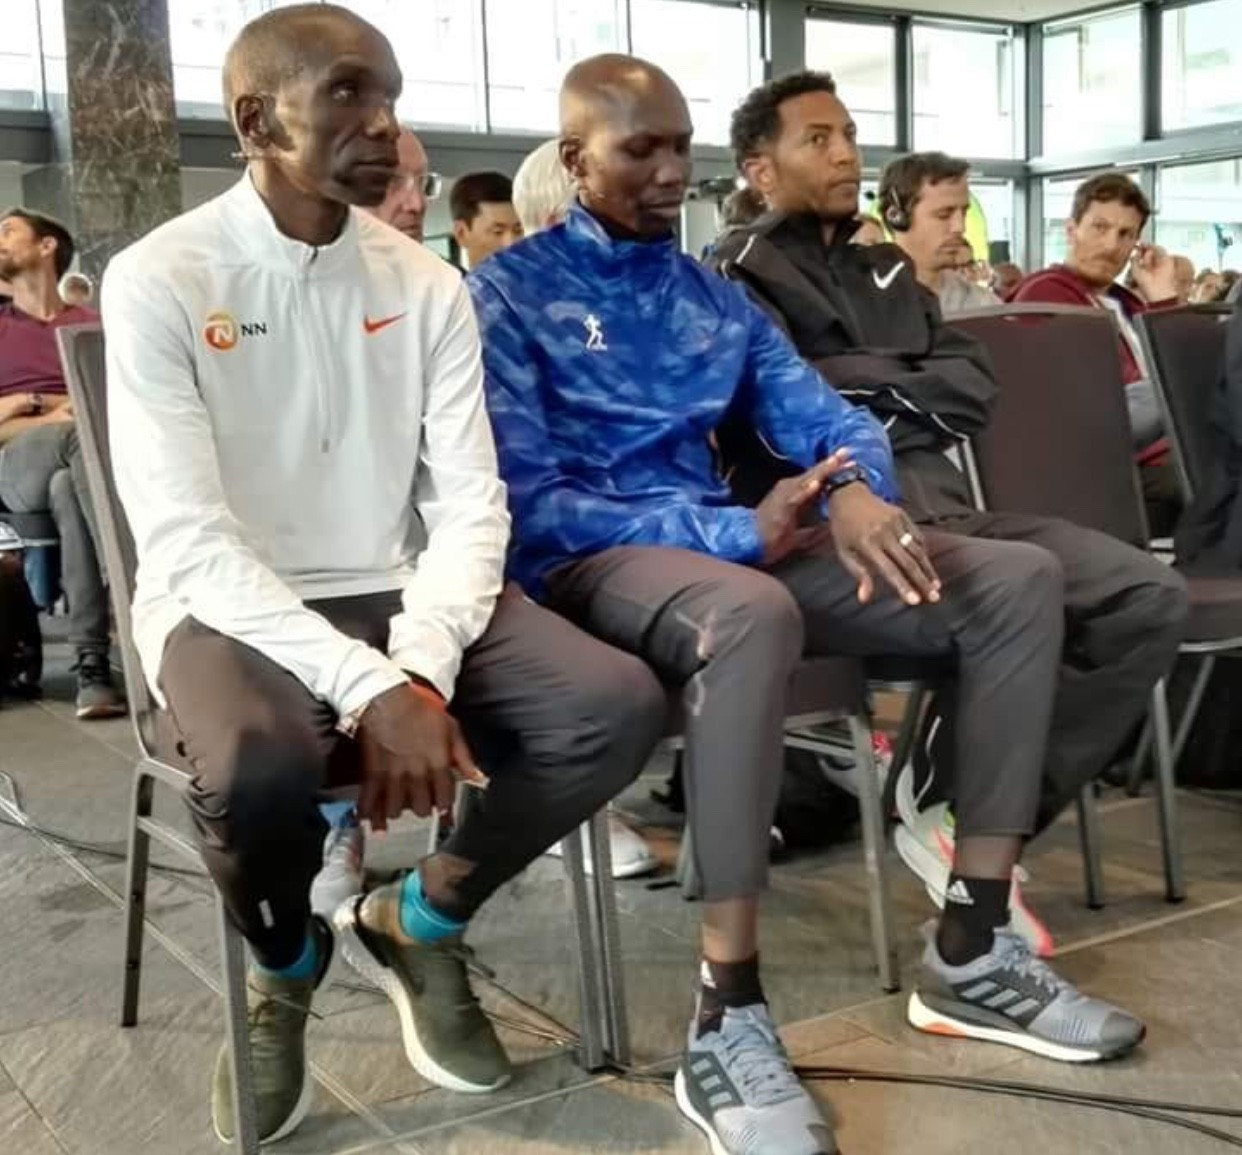 Eliud Kipchoge and Wilson Kipsang are set to battle and maybe set a world record in just a few hours in Berlin